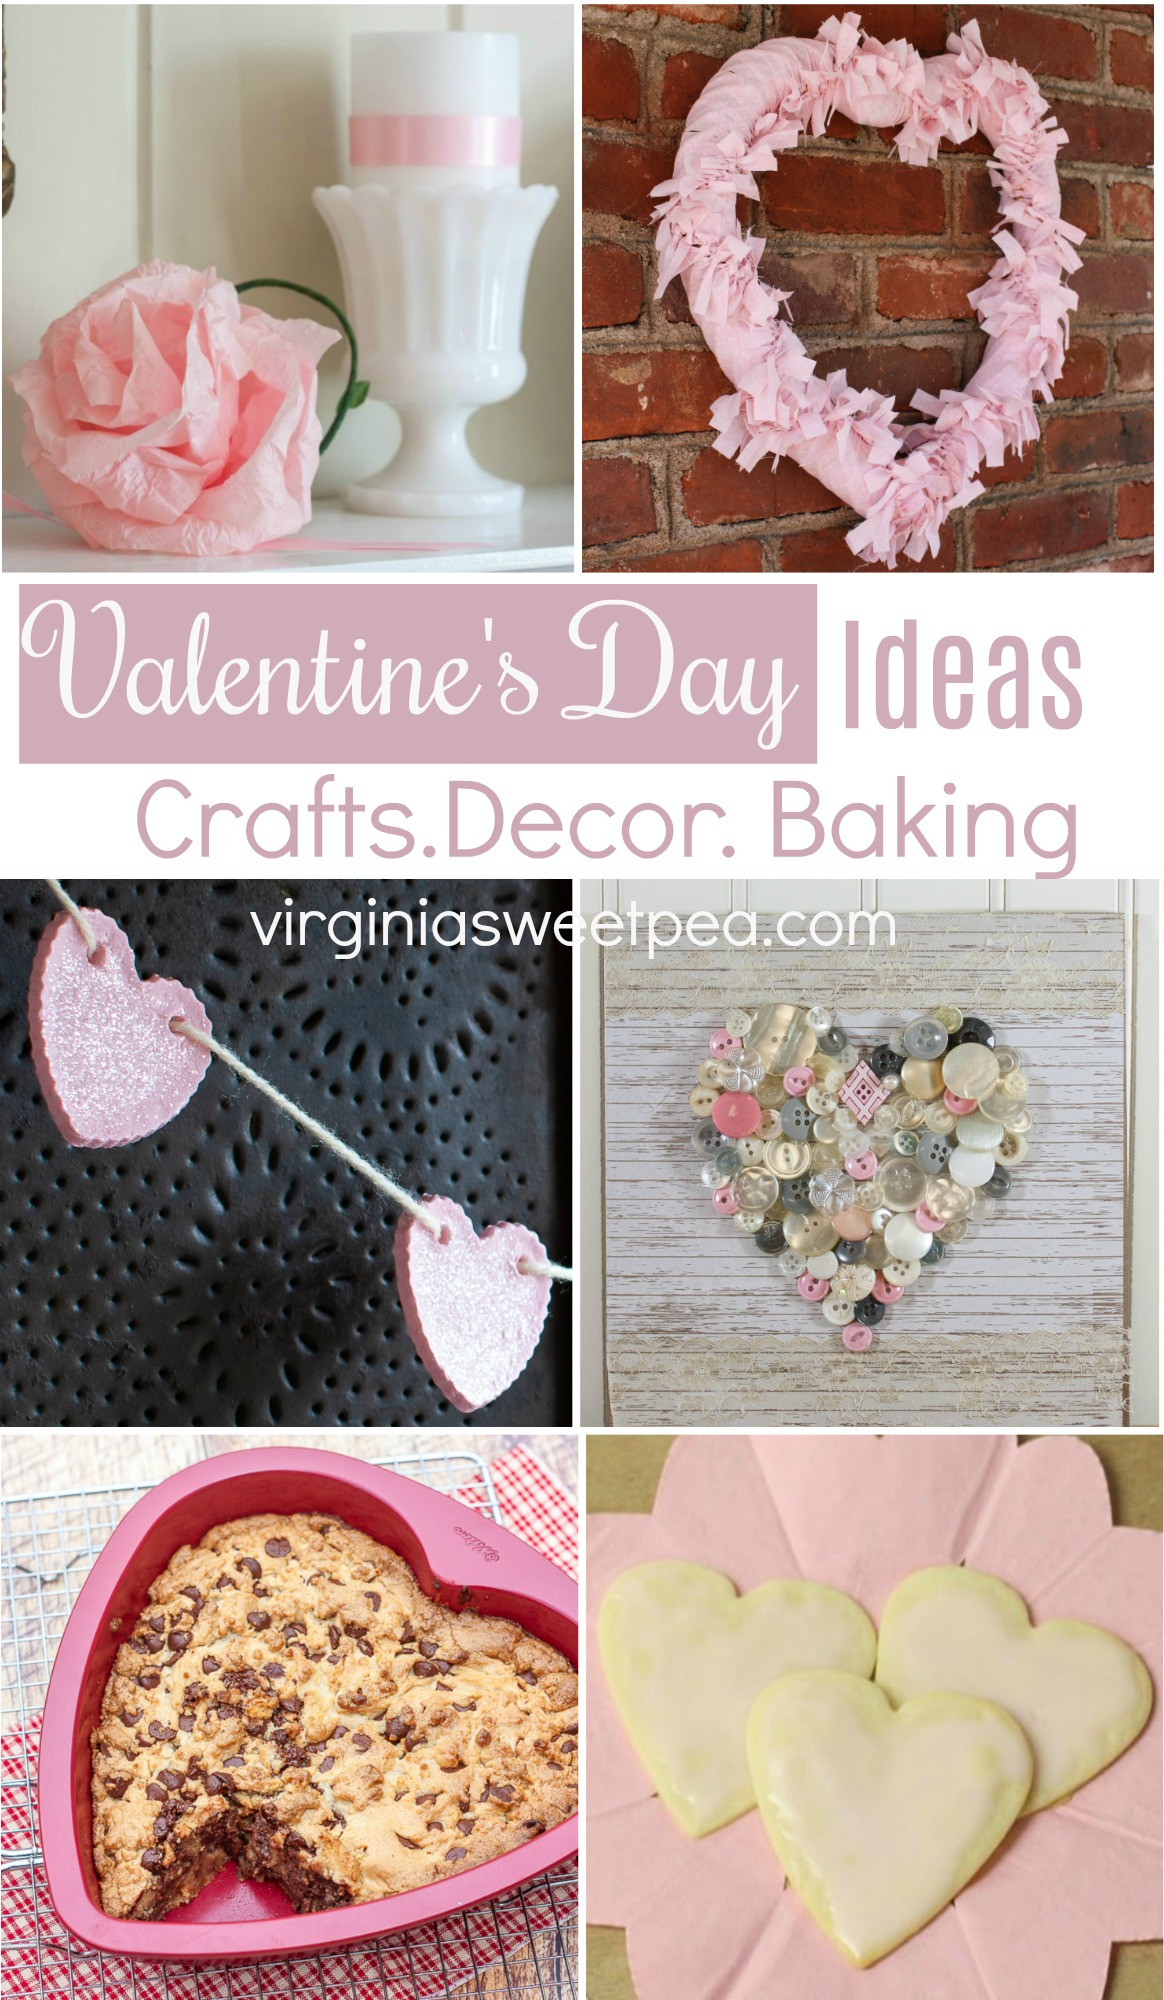 Valentine's Day Ideas for Crafts, Decor, and Baking - Get loads of ideas to make your Valentine's Day extra special.